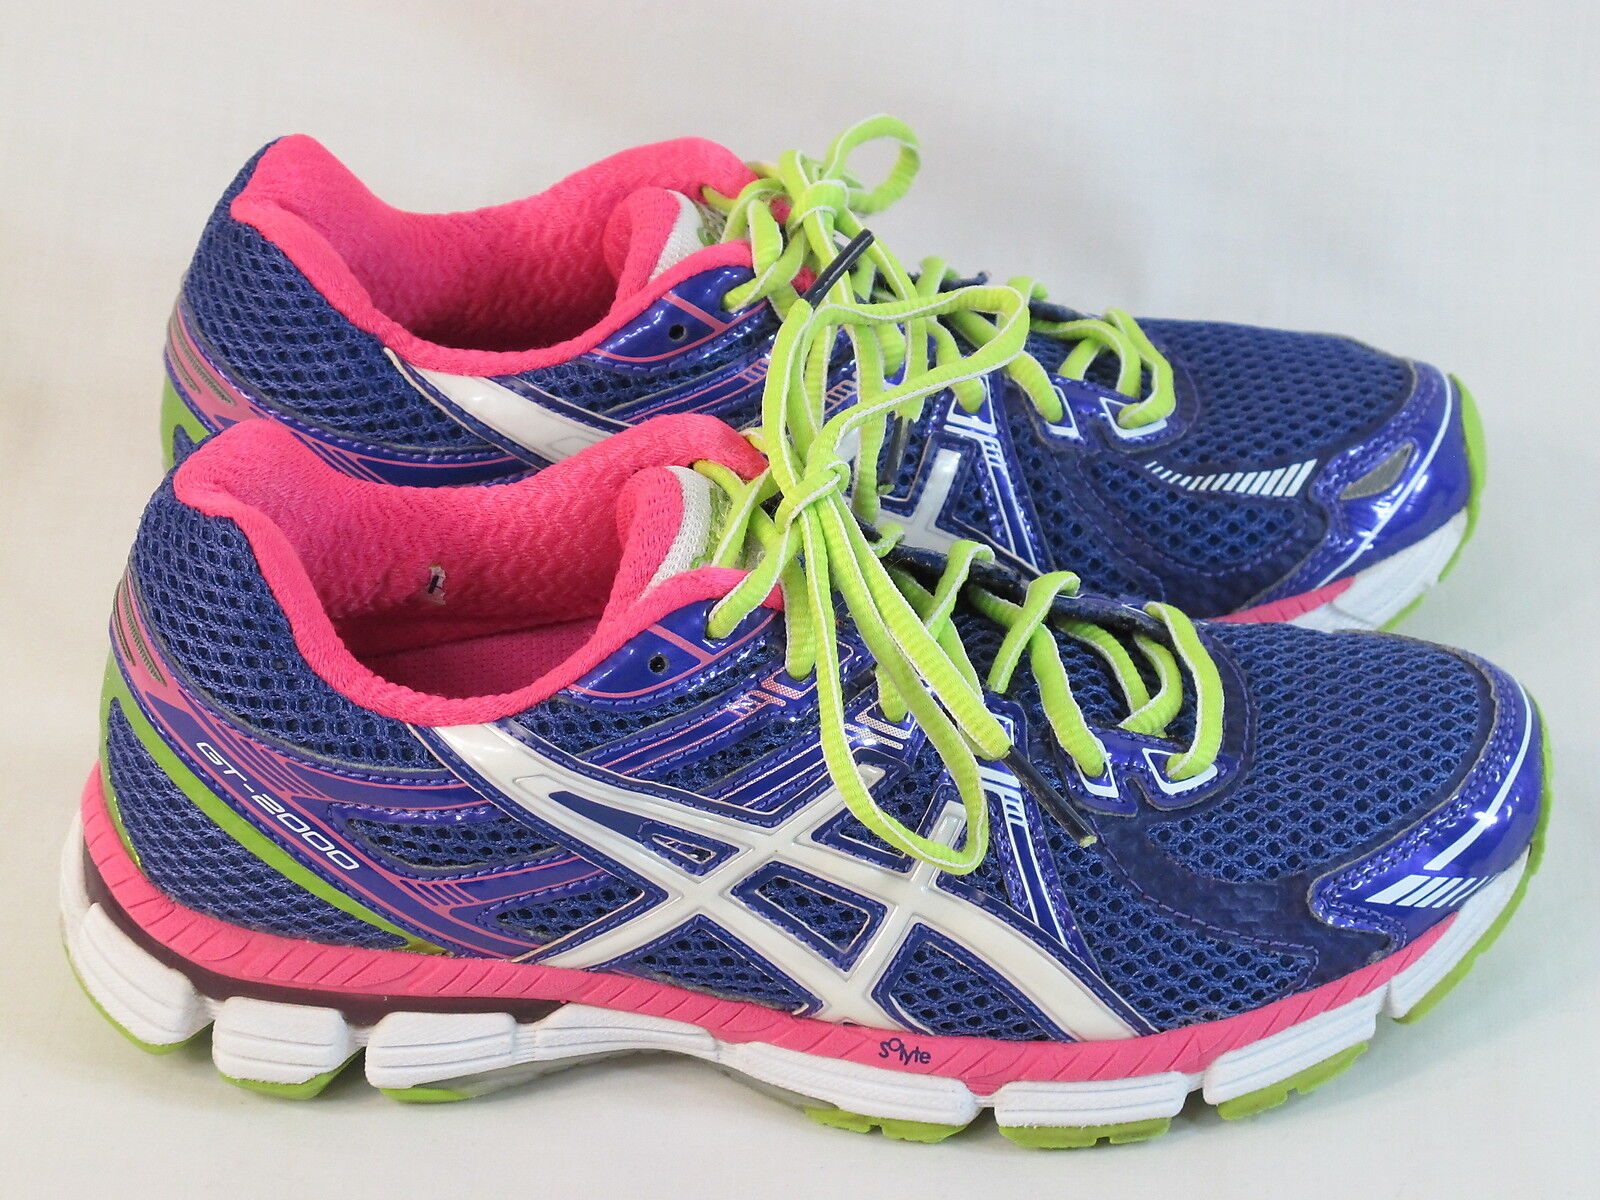 ASICS GT 2000 Running Shoes Women's Comfortable Wild casual shoes